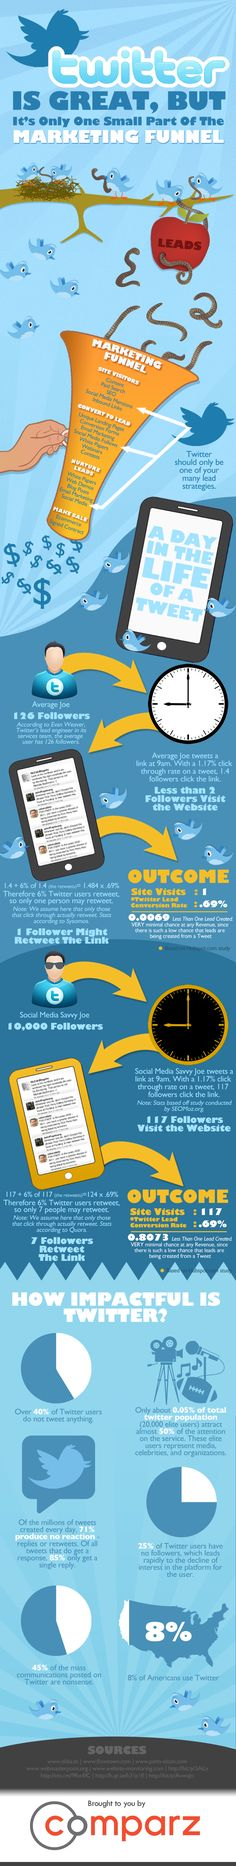 Twitter is only one small piece in the Marketing Funnel.